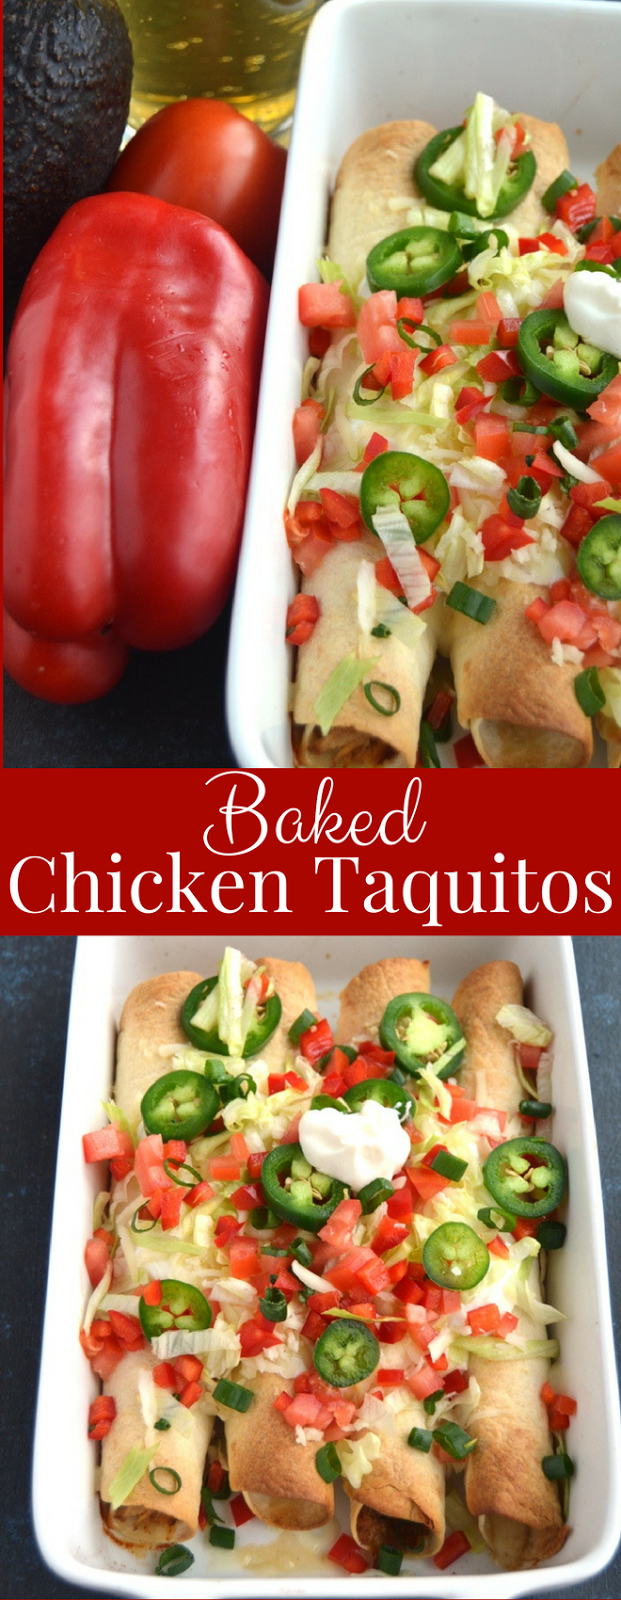 Baked Chicken Taquitos are filled with shredded chipotle chicken and melted cheese and are perfectly crispy. Topped with tomatoes, jalapeno, lettuce, sour cream, cheese and green onion for a delicious appetizer or meal! www.nutritionistreviews.com